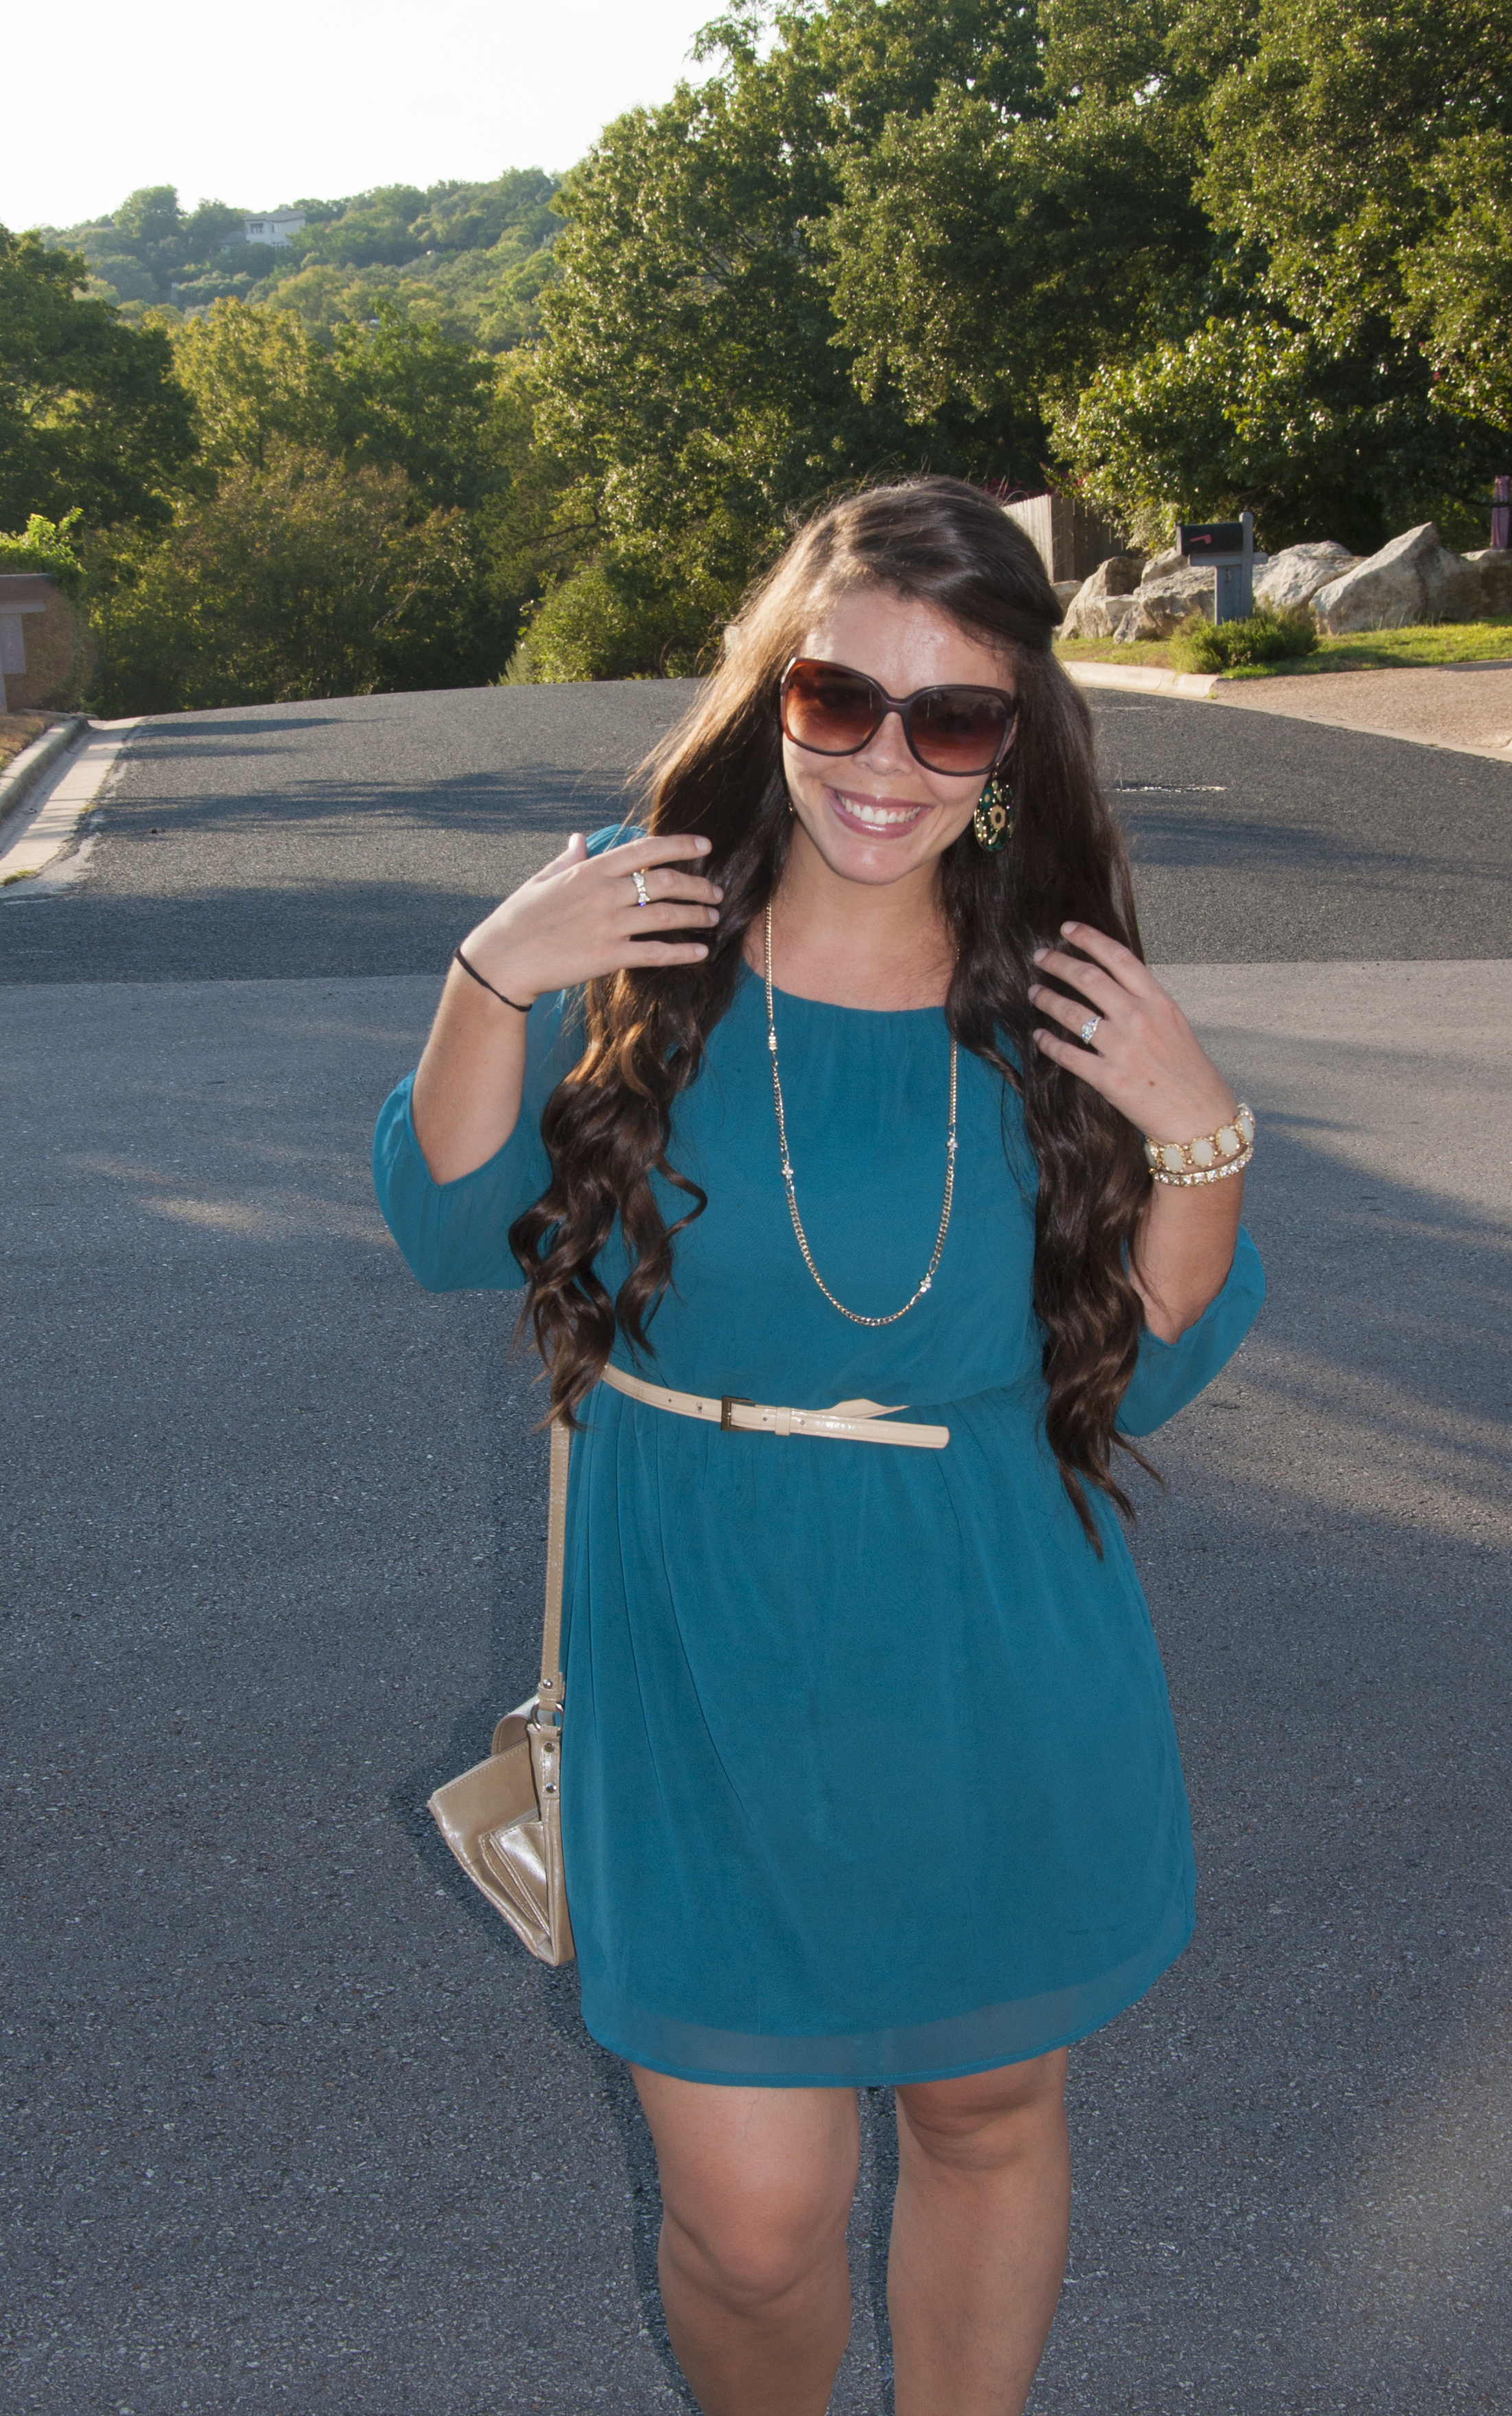 Teal And Gold A Work Party Dress  All That Glitters-9514